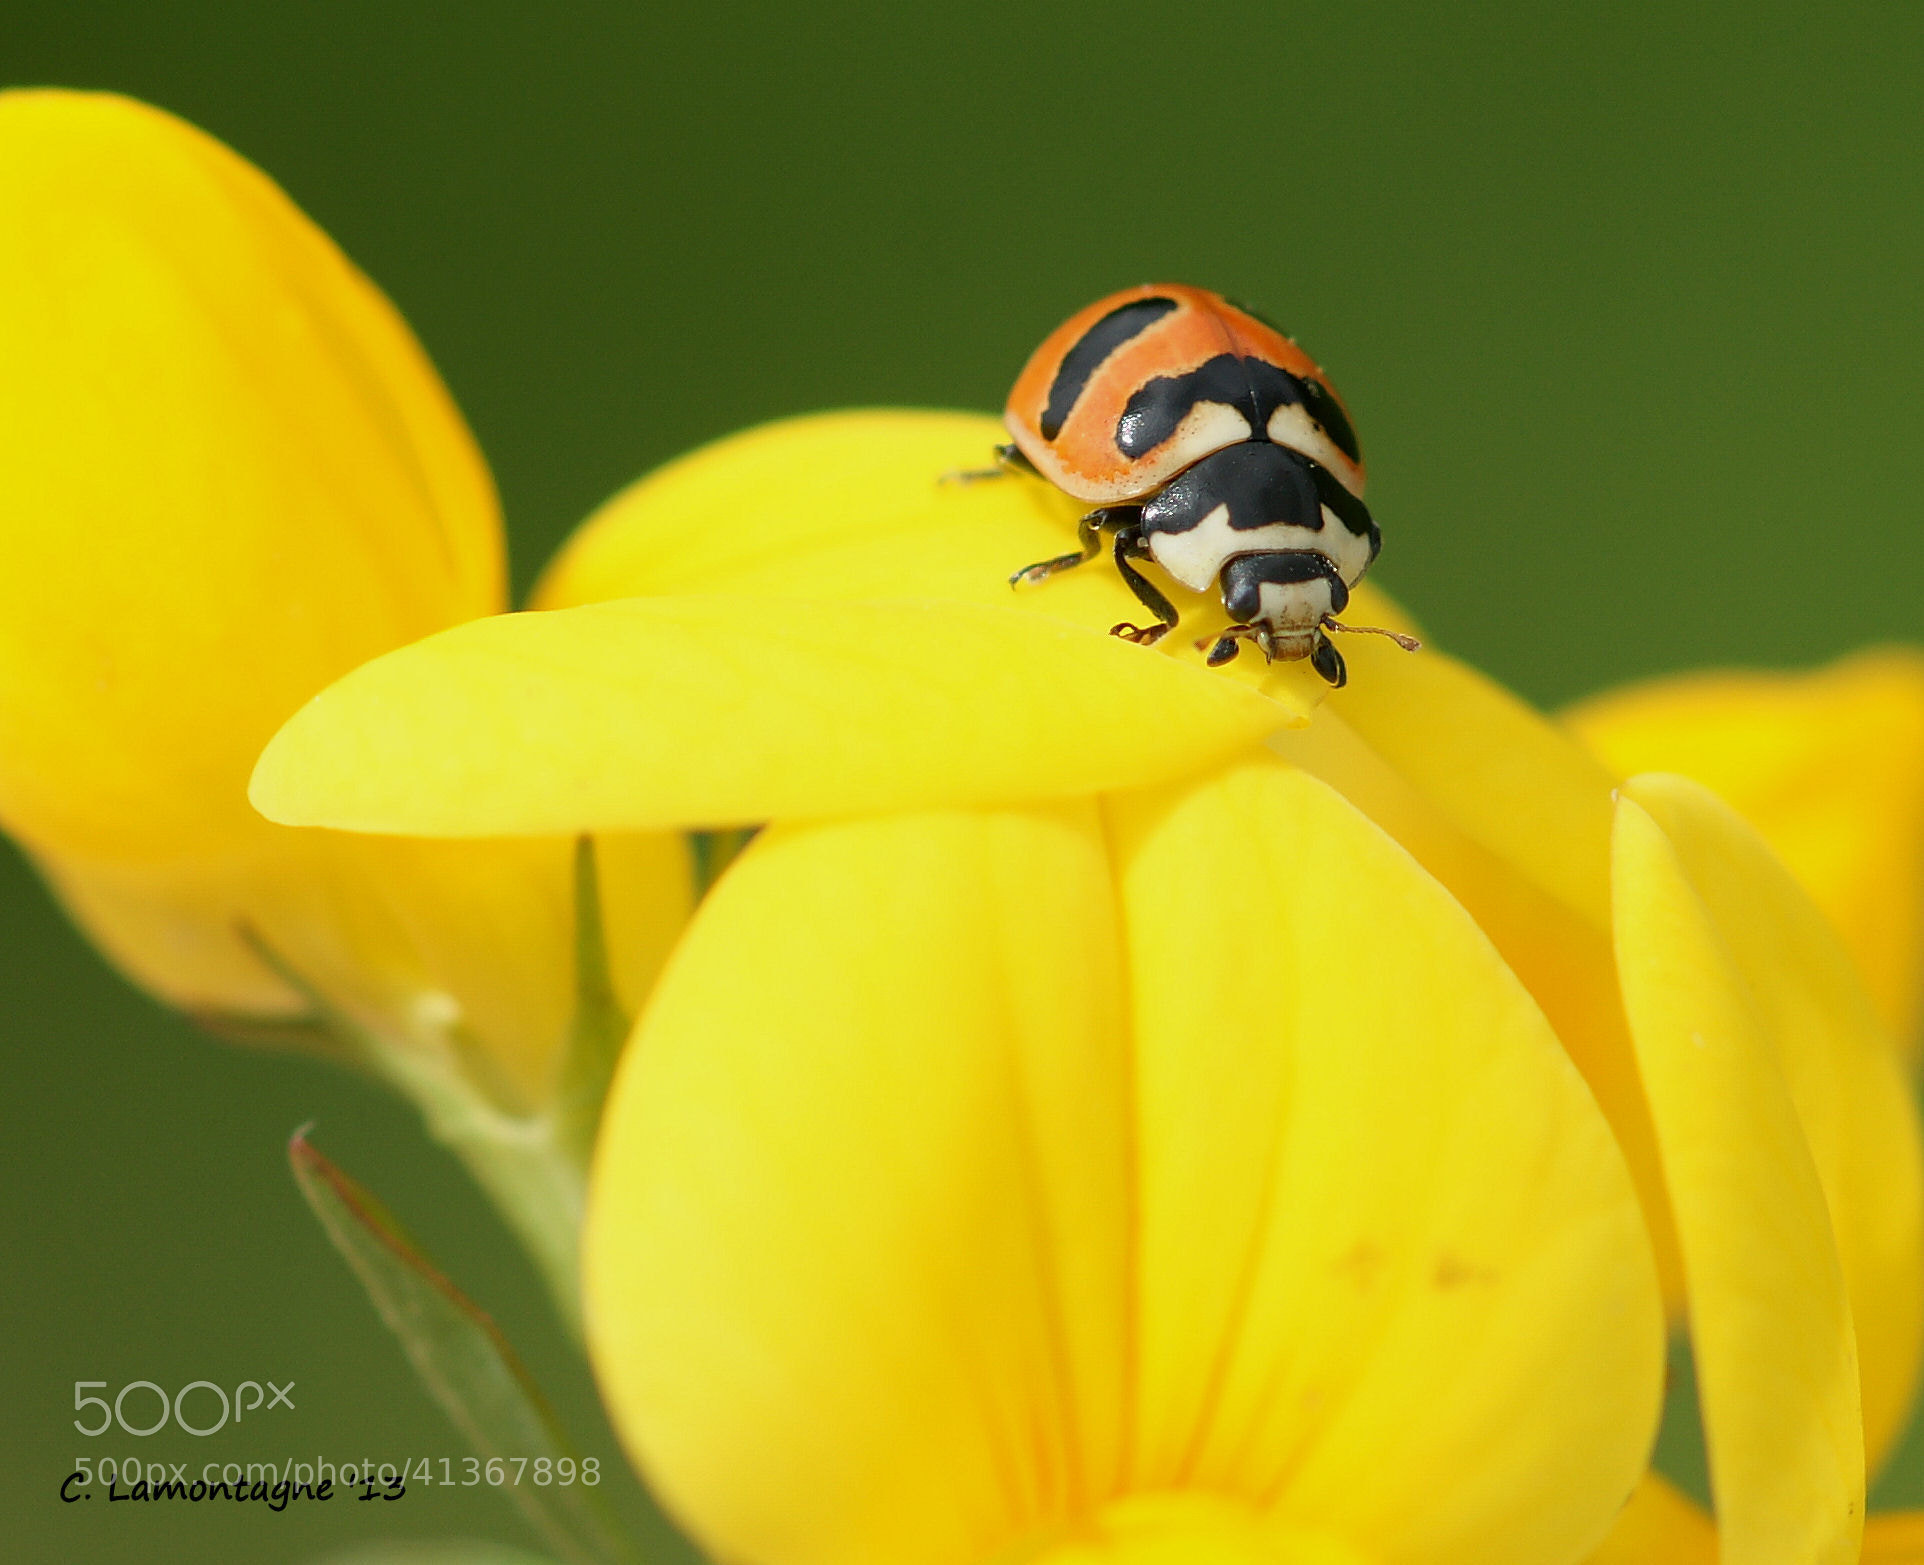 Photograph Banded Ladybug by Corinne Lamontagne on 500px